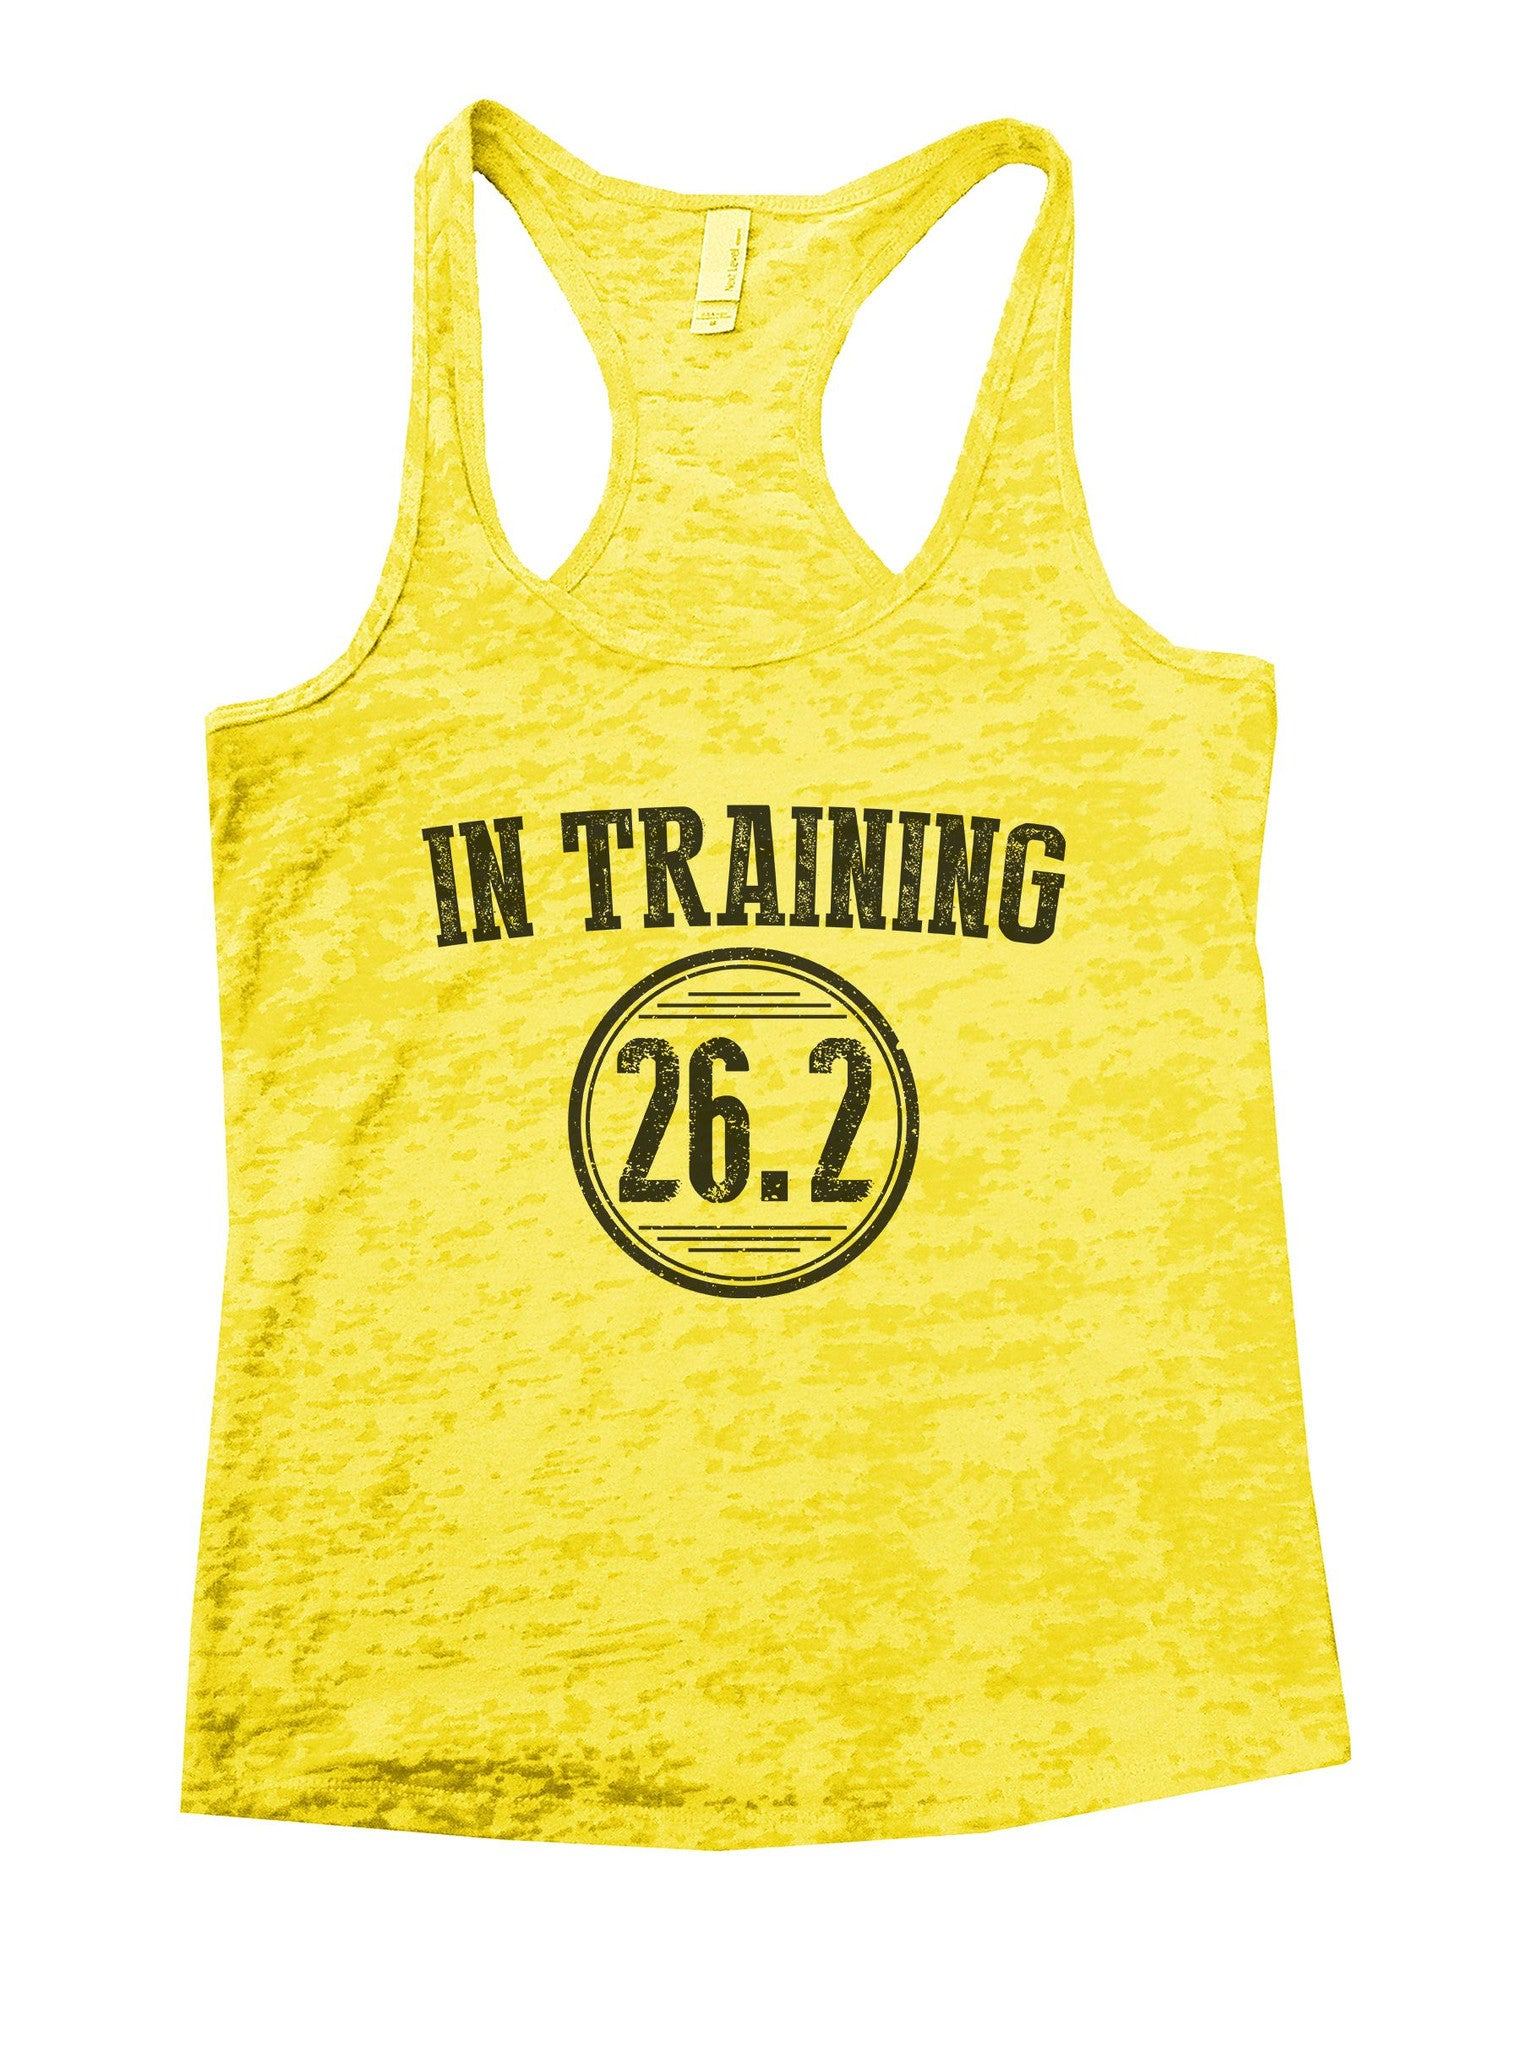 In Training 26.2 Burnout Tank Top By BurnoutTankTops.com - 1037 - Funny Shirts Tank Tops Burnouts and Triblends  - 7